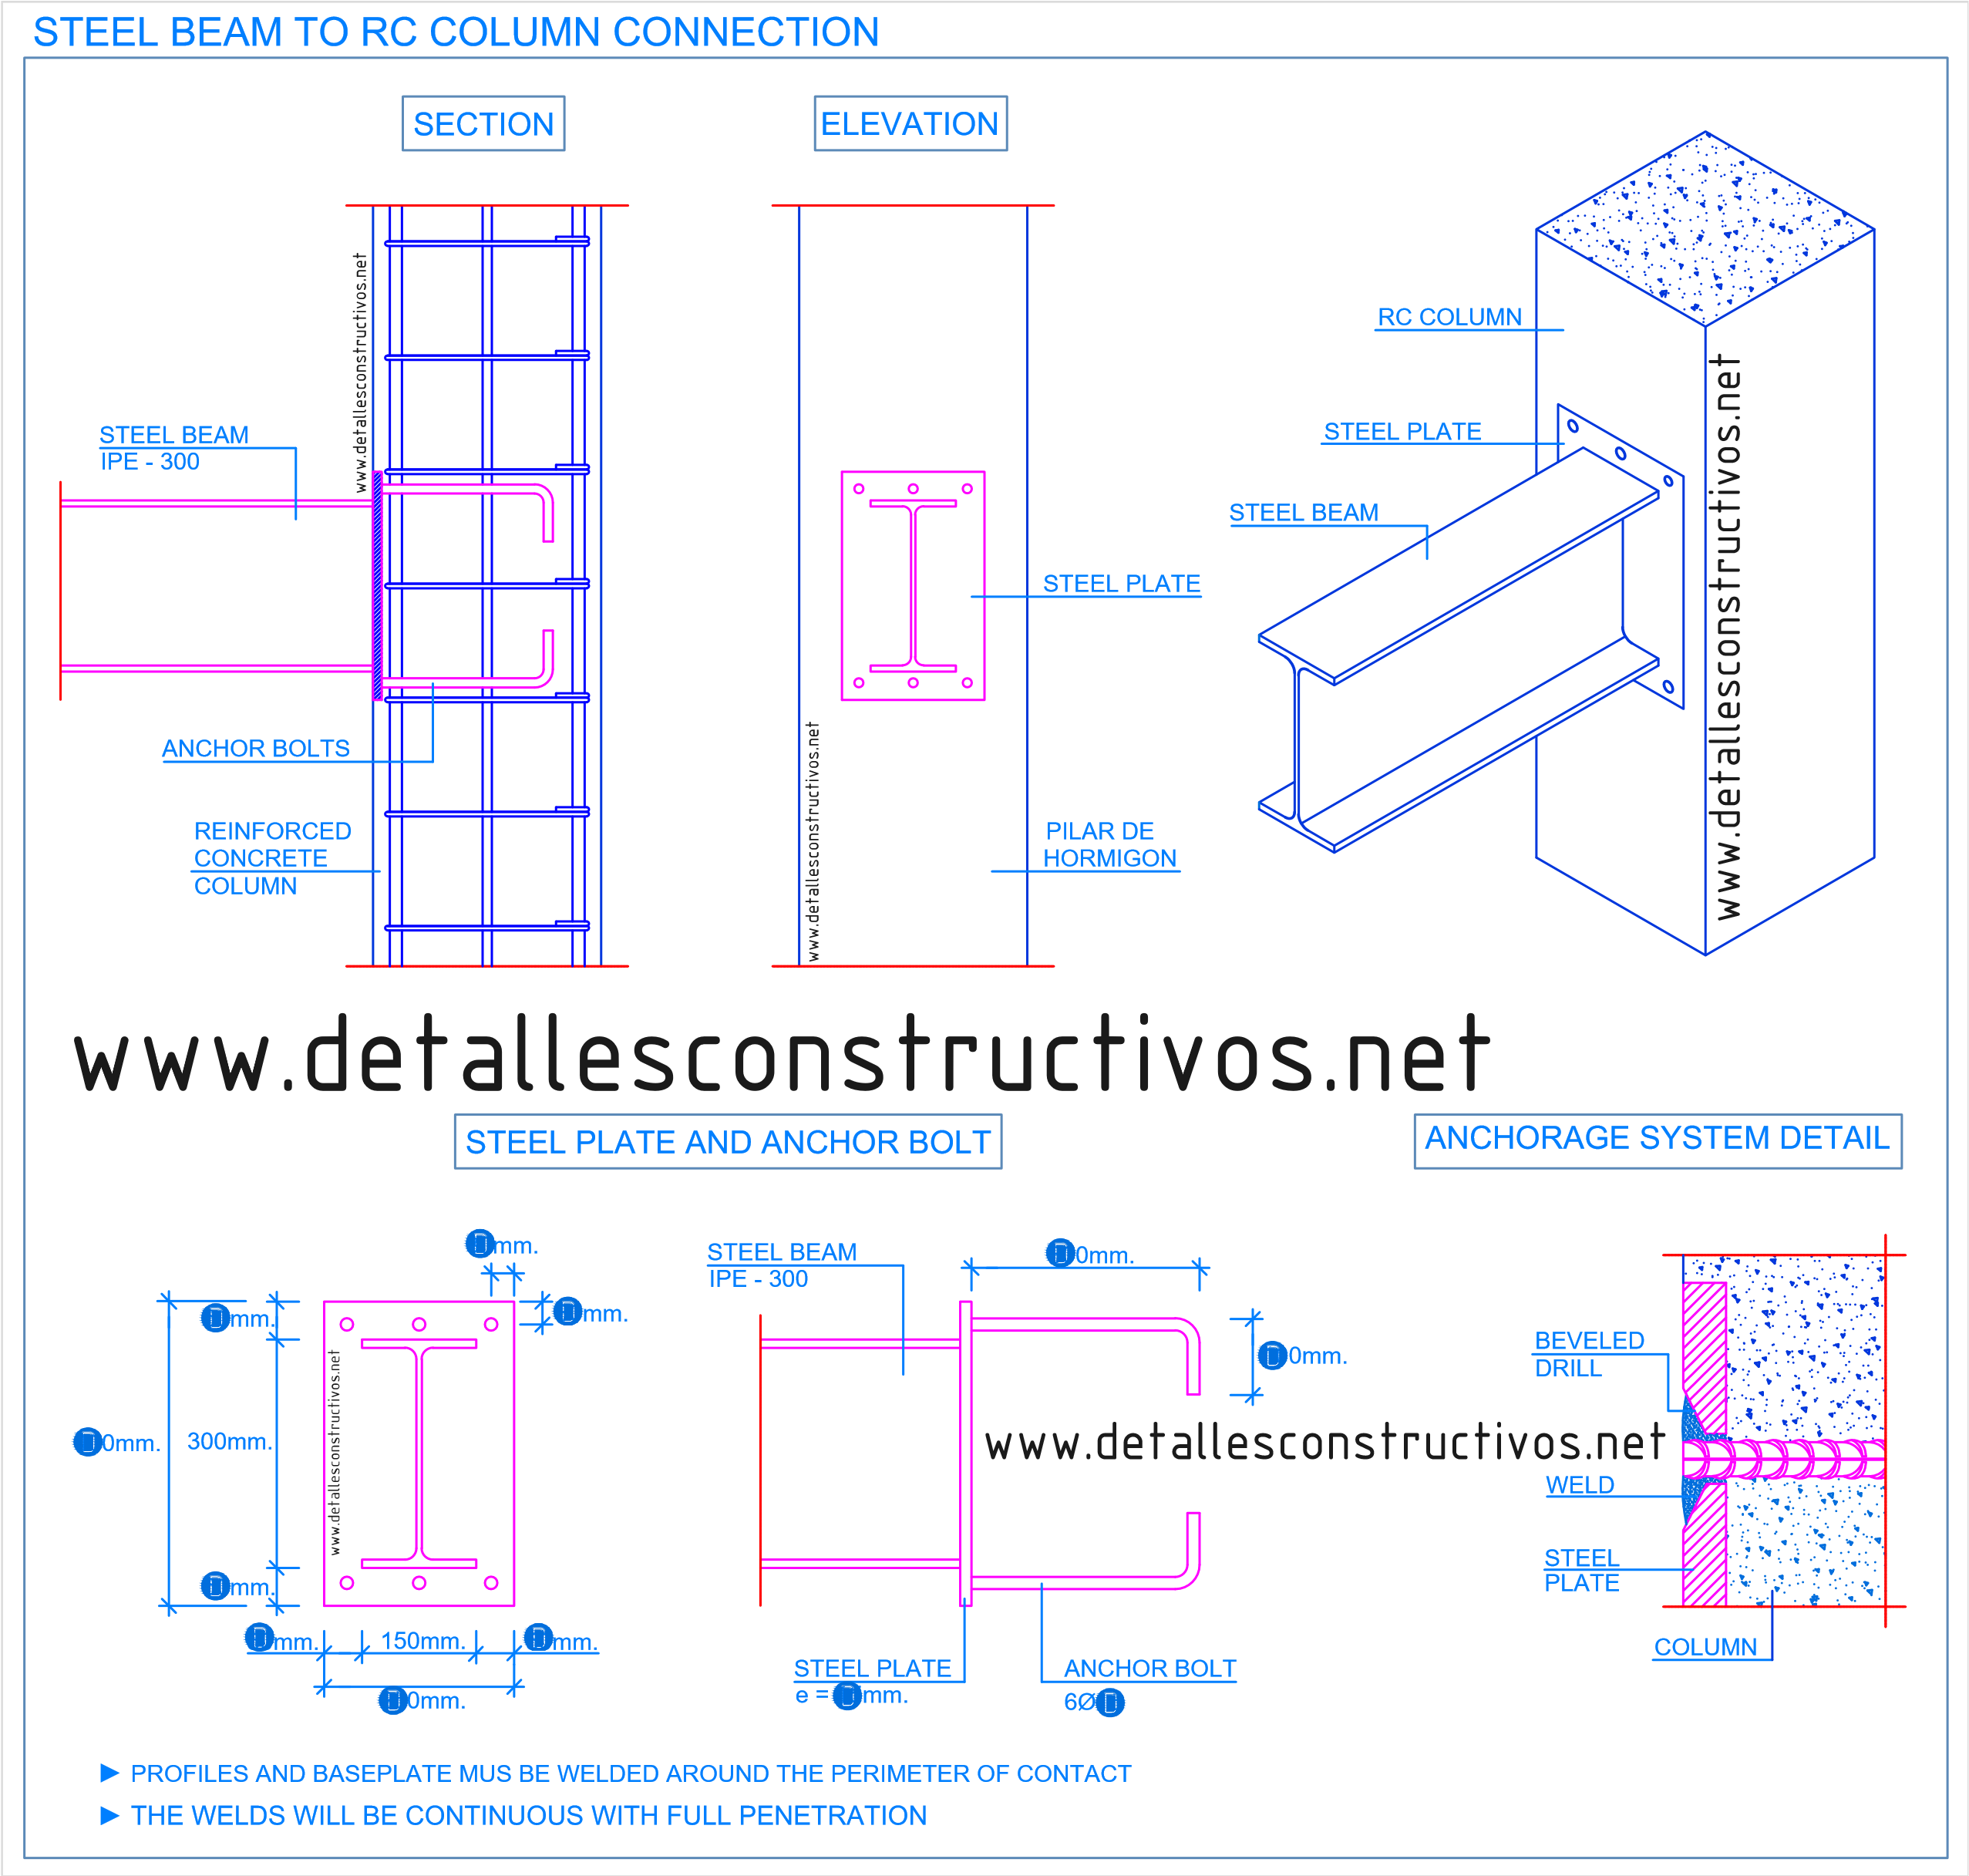 Steel Beam To Concrete Column Connection Details In 2020 Concrete Column Steel Beams Steel Columns